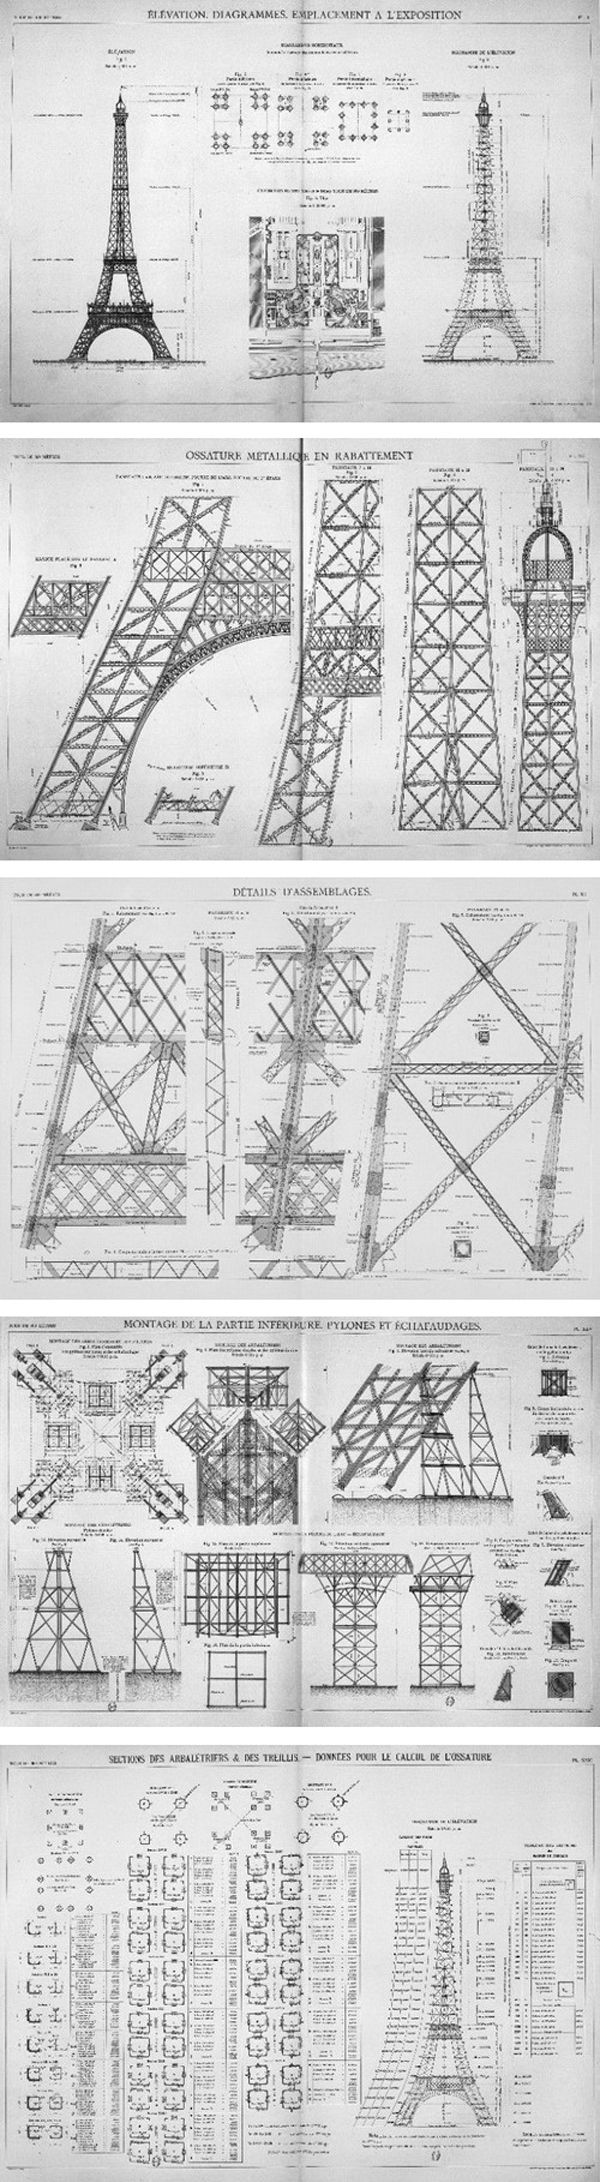 Blueprints for the eiffel tower named after the engineer gustave blueprints for the eiffel tower named after the engineer gustave eiffel whose company designed malvernweather Image collections